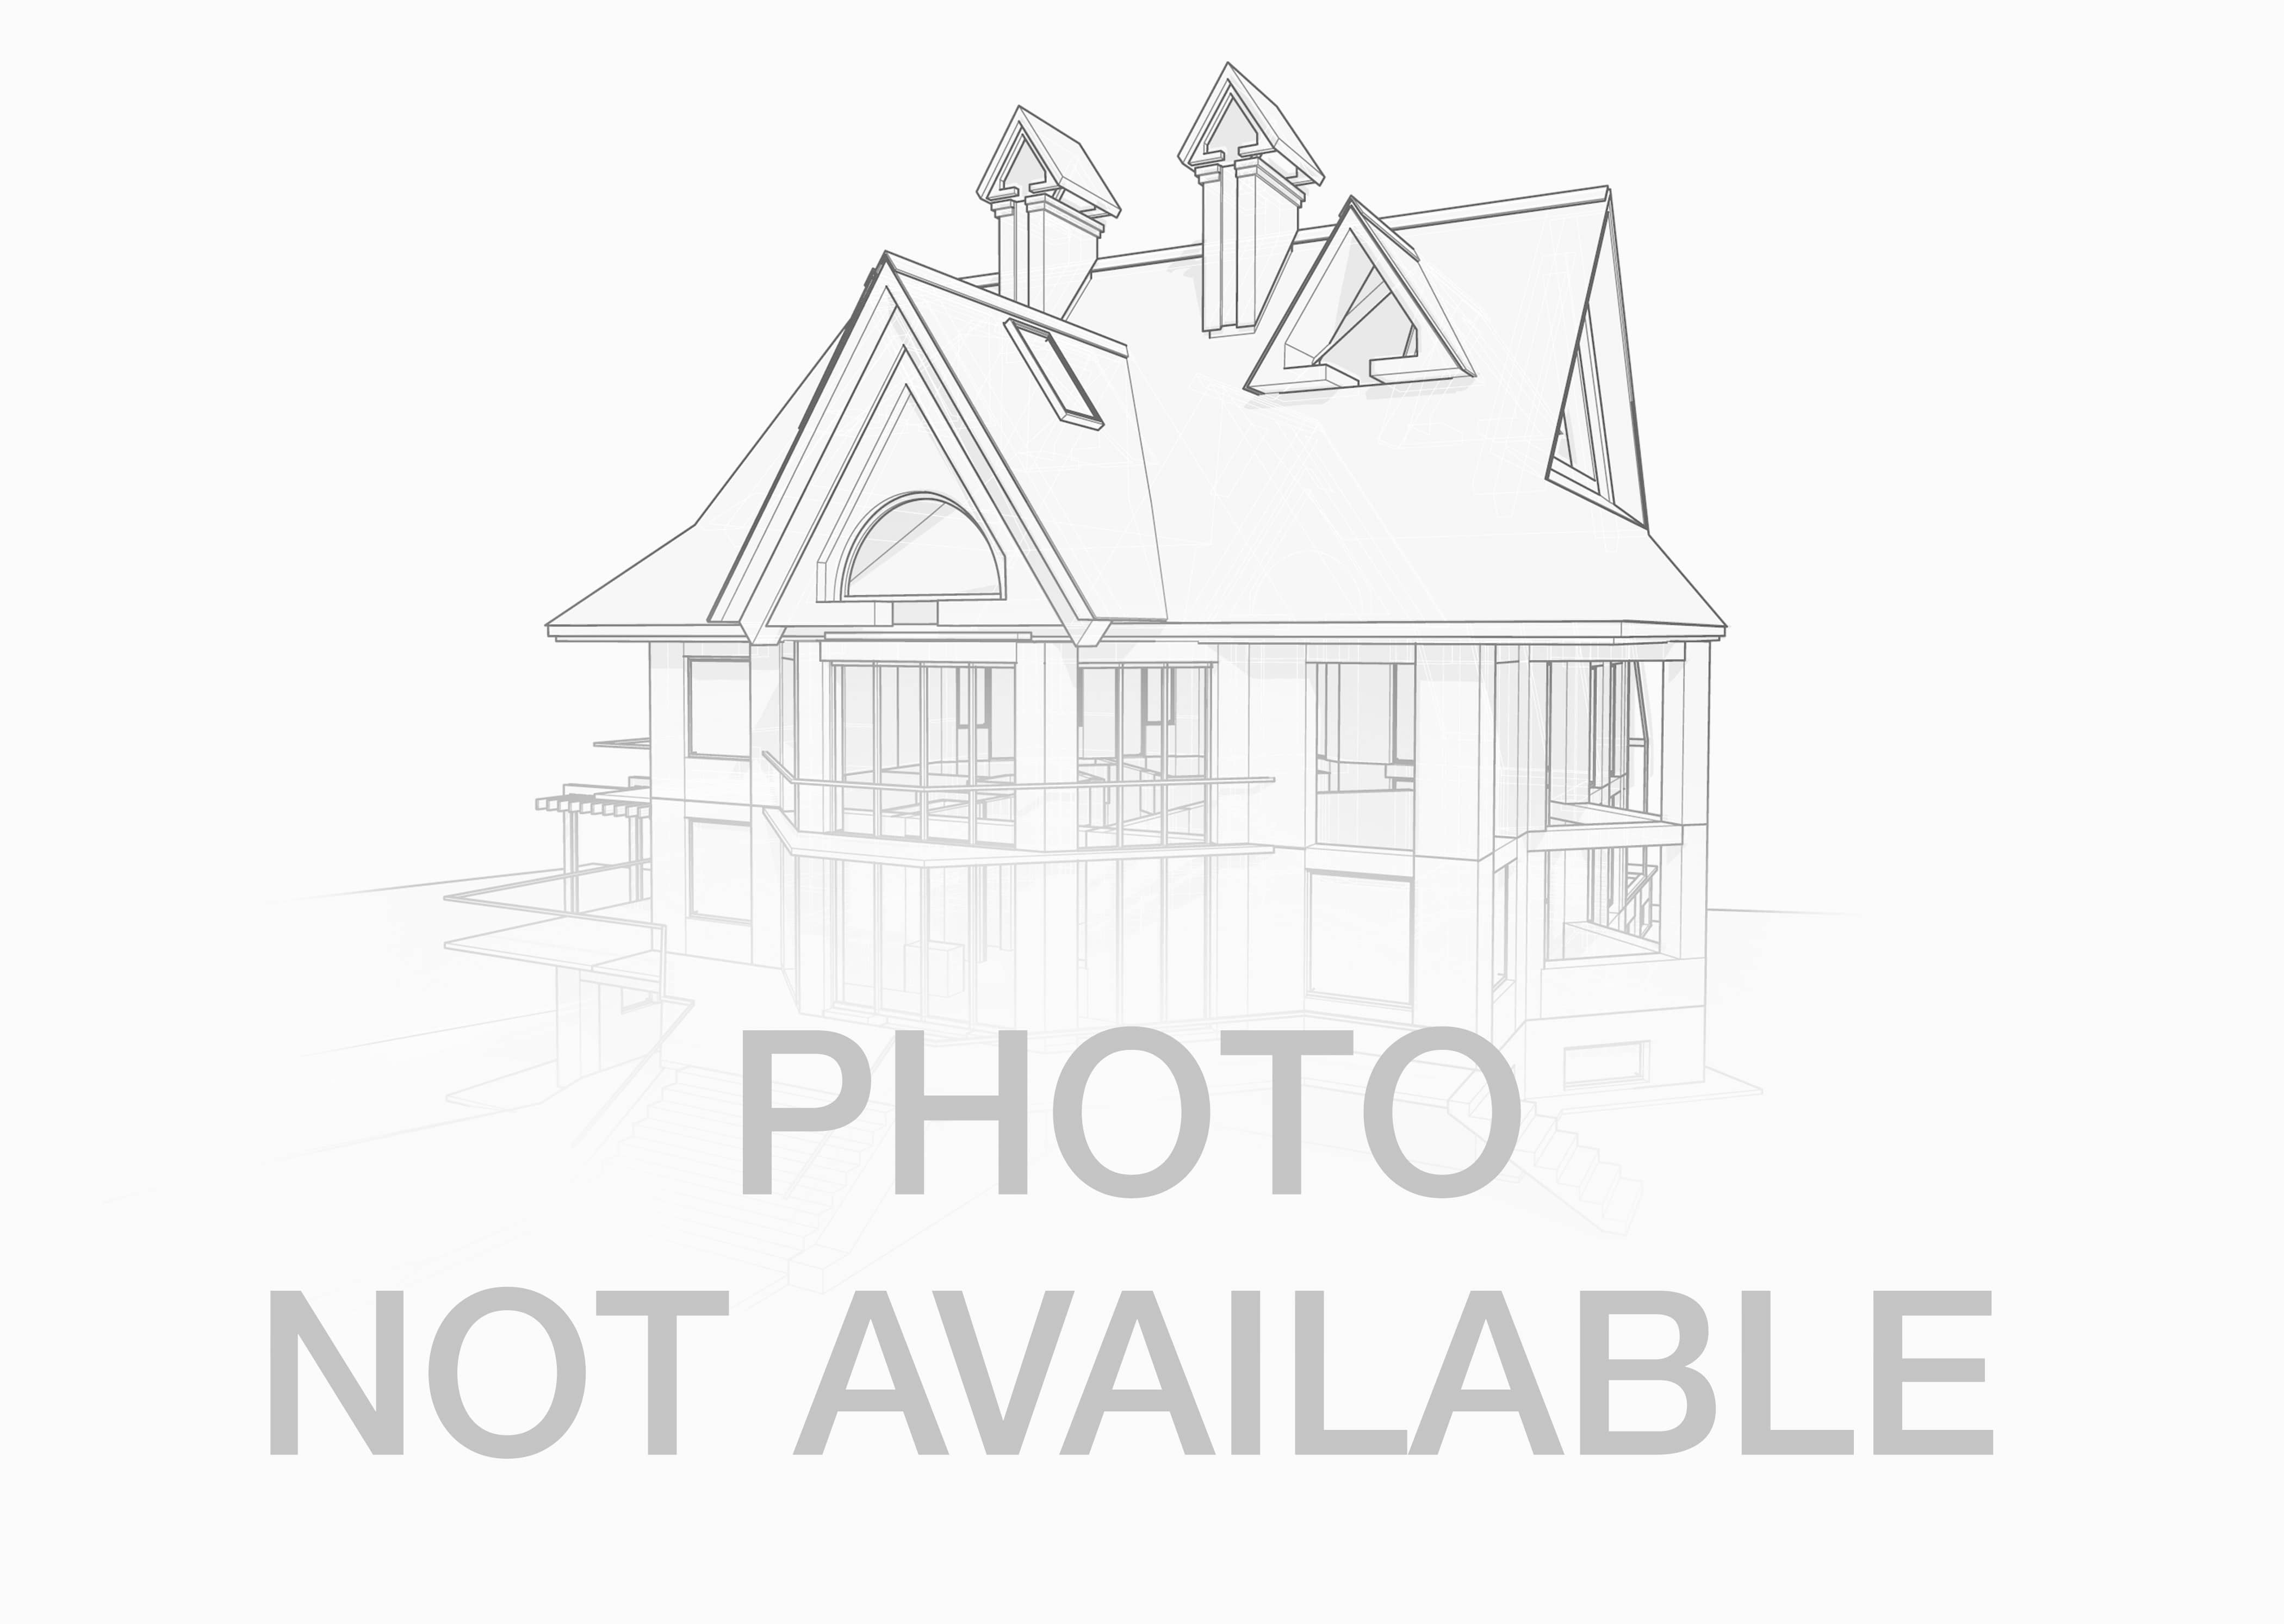 Listings Search Results from LaDawn Knicely with Hometown